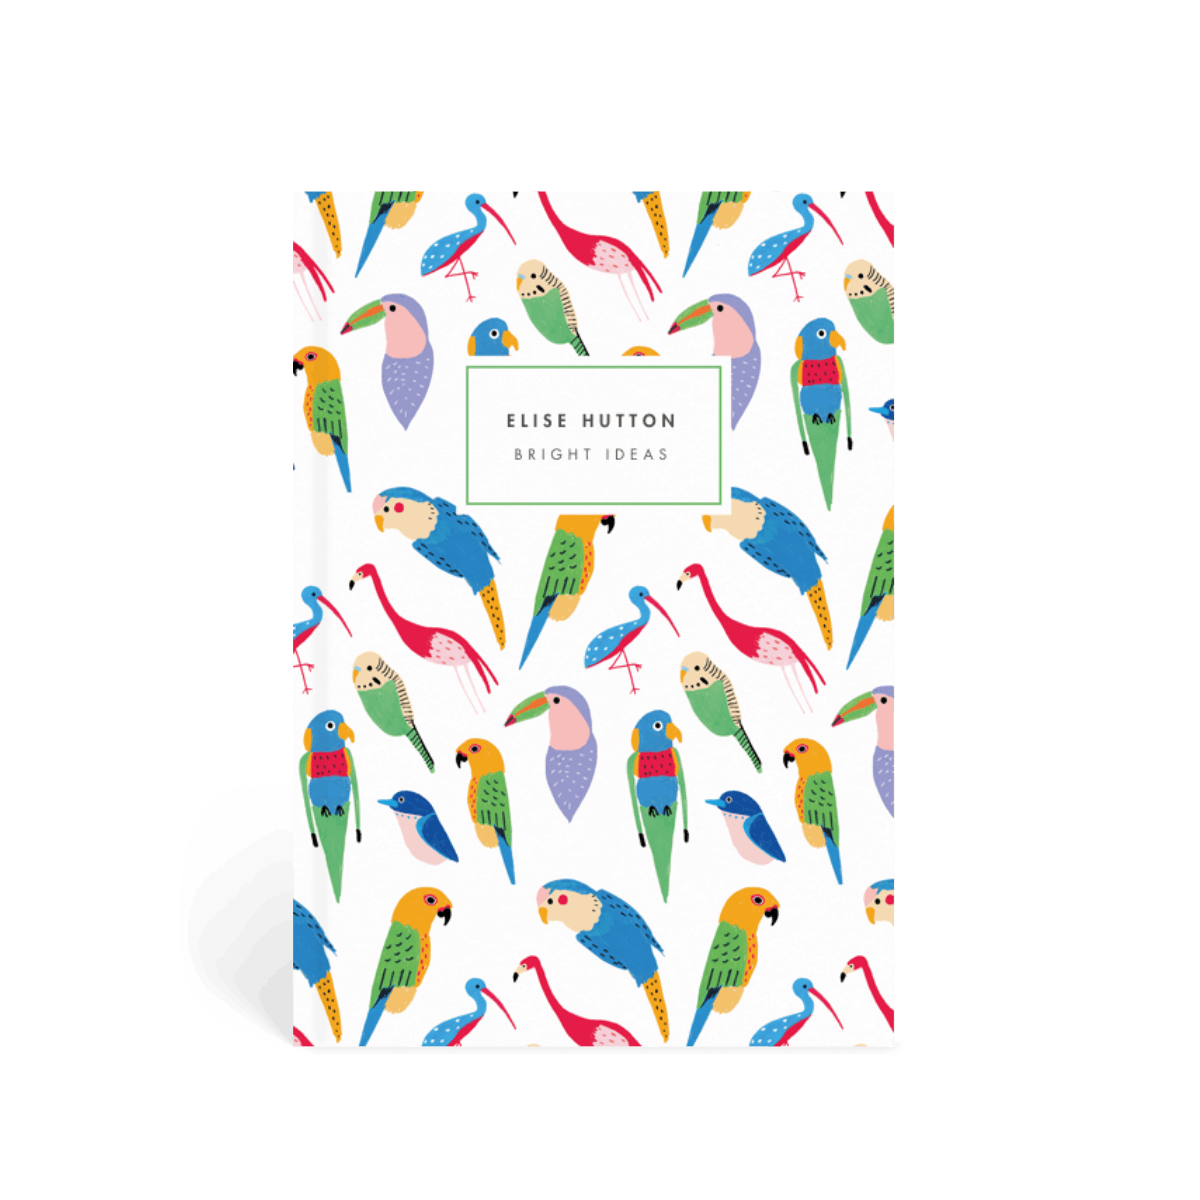 Https%3a%2f%2fwww.papier.com%2fproduct image%2f56755%2f25%2ftropical birds 13627 front 1542370101.png?ixlib=rb 1.1